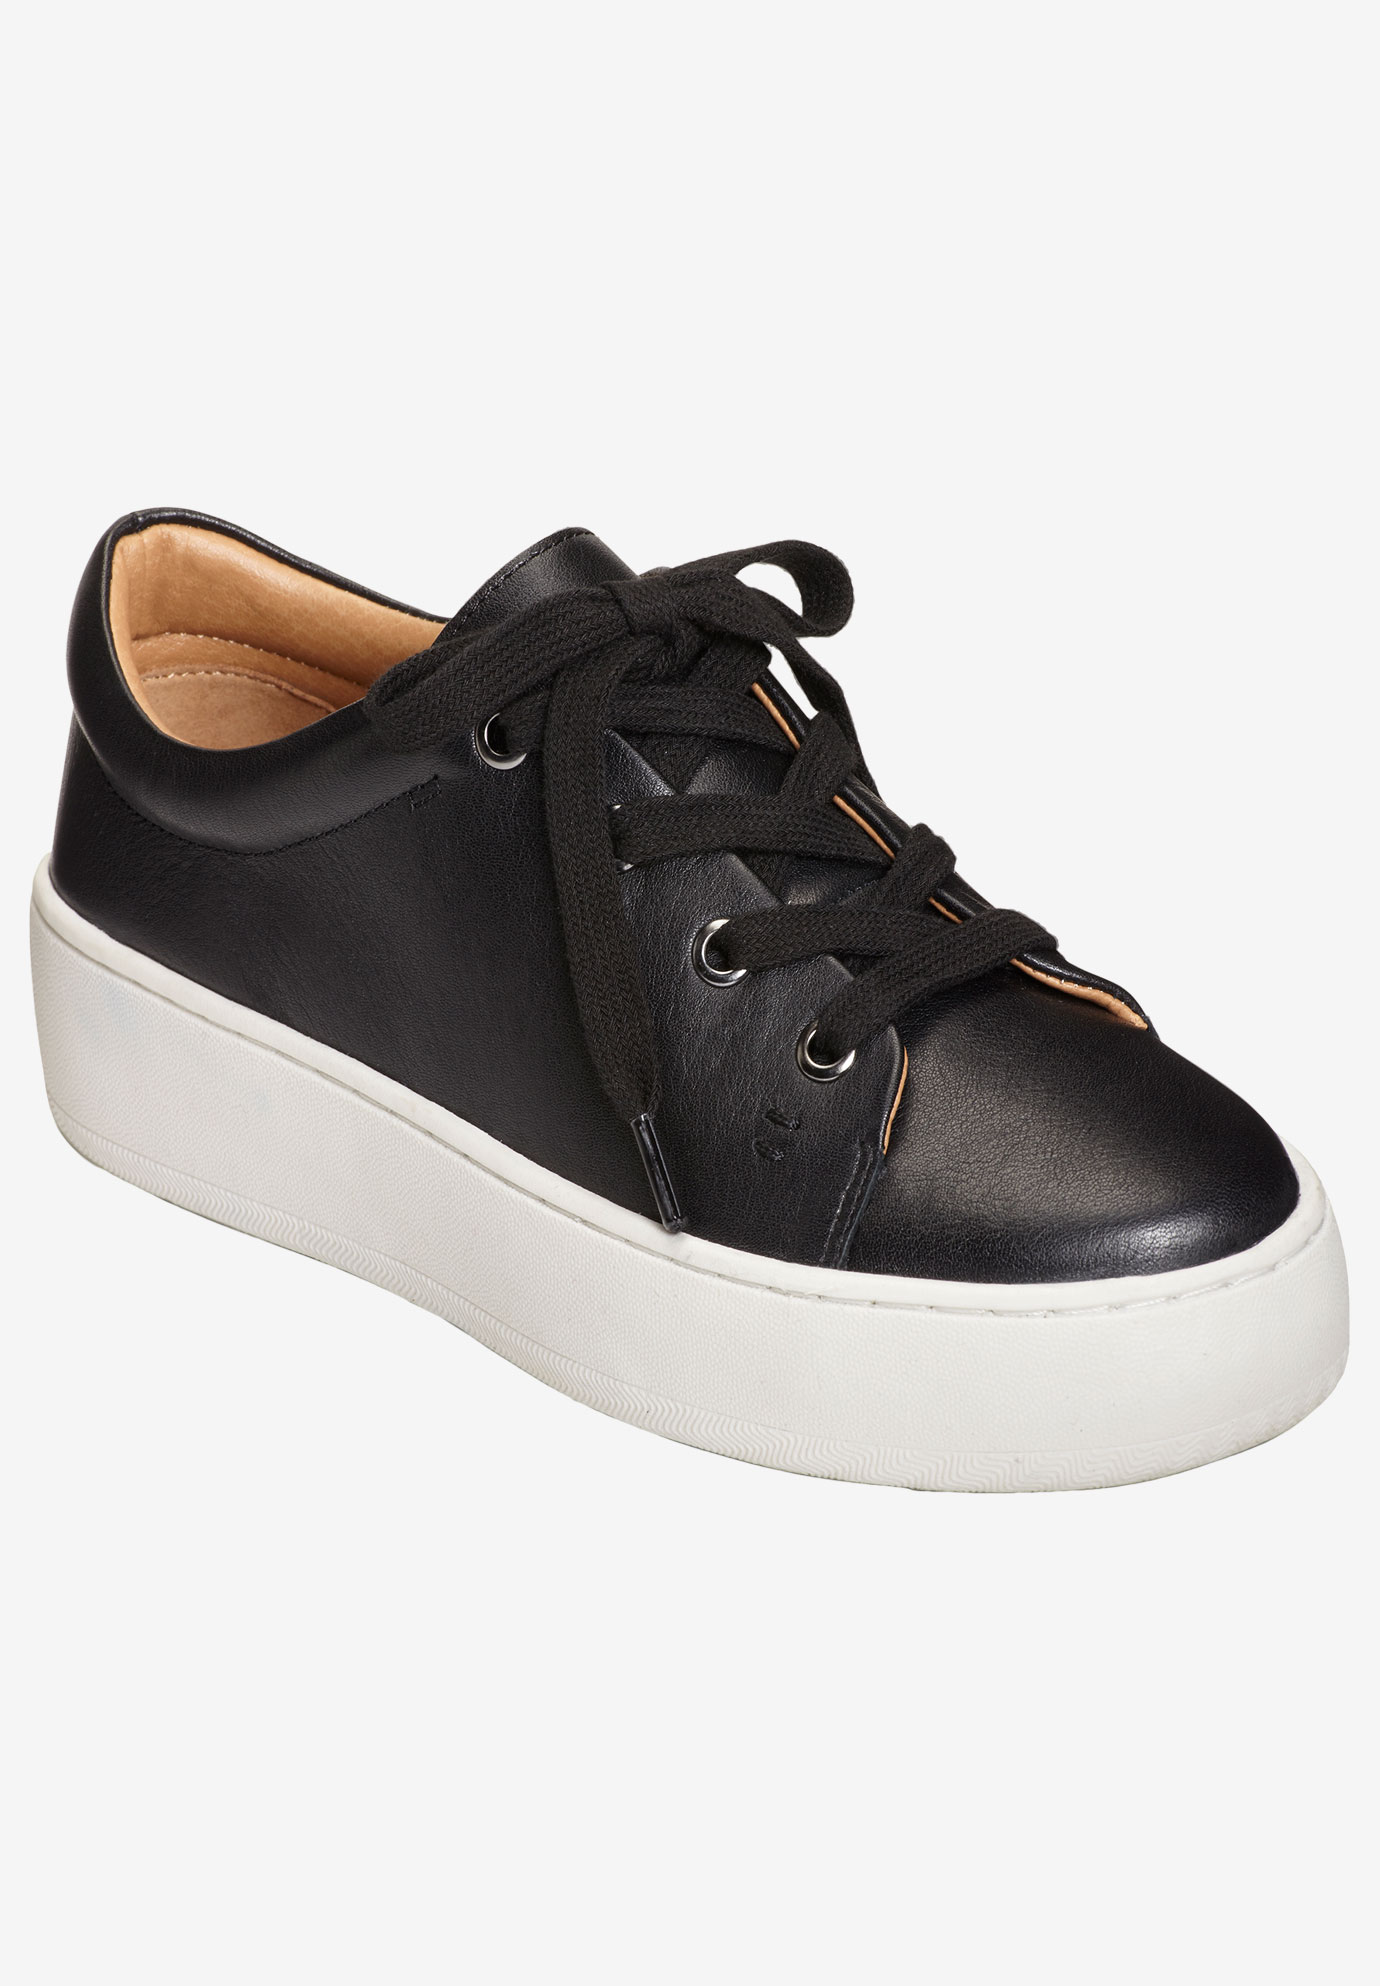 Term Paper Sneakers by Aerosoles®,